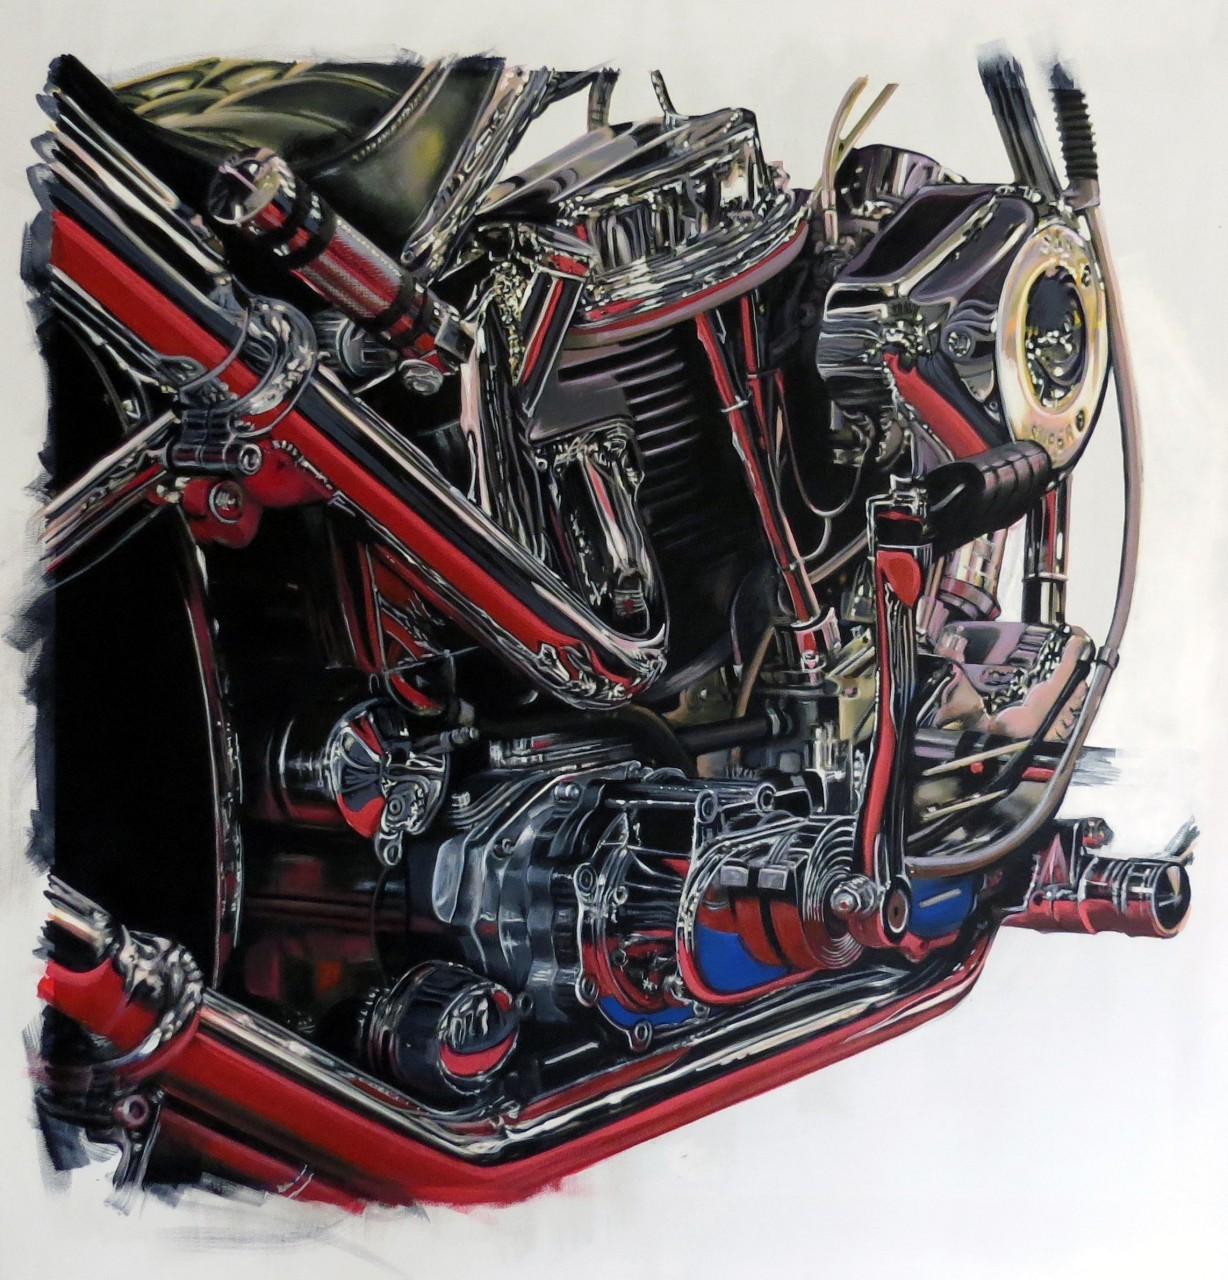 custom engine painting by Mike Brown